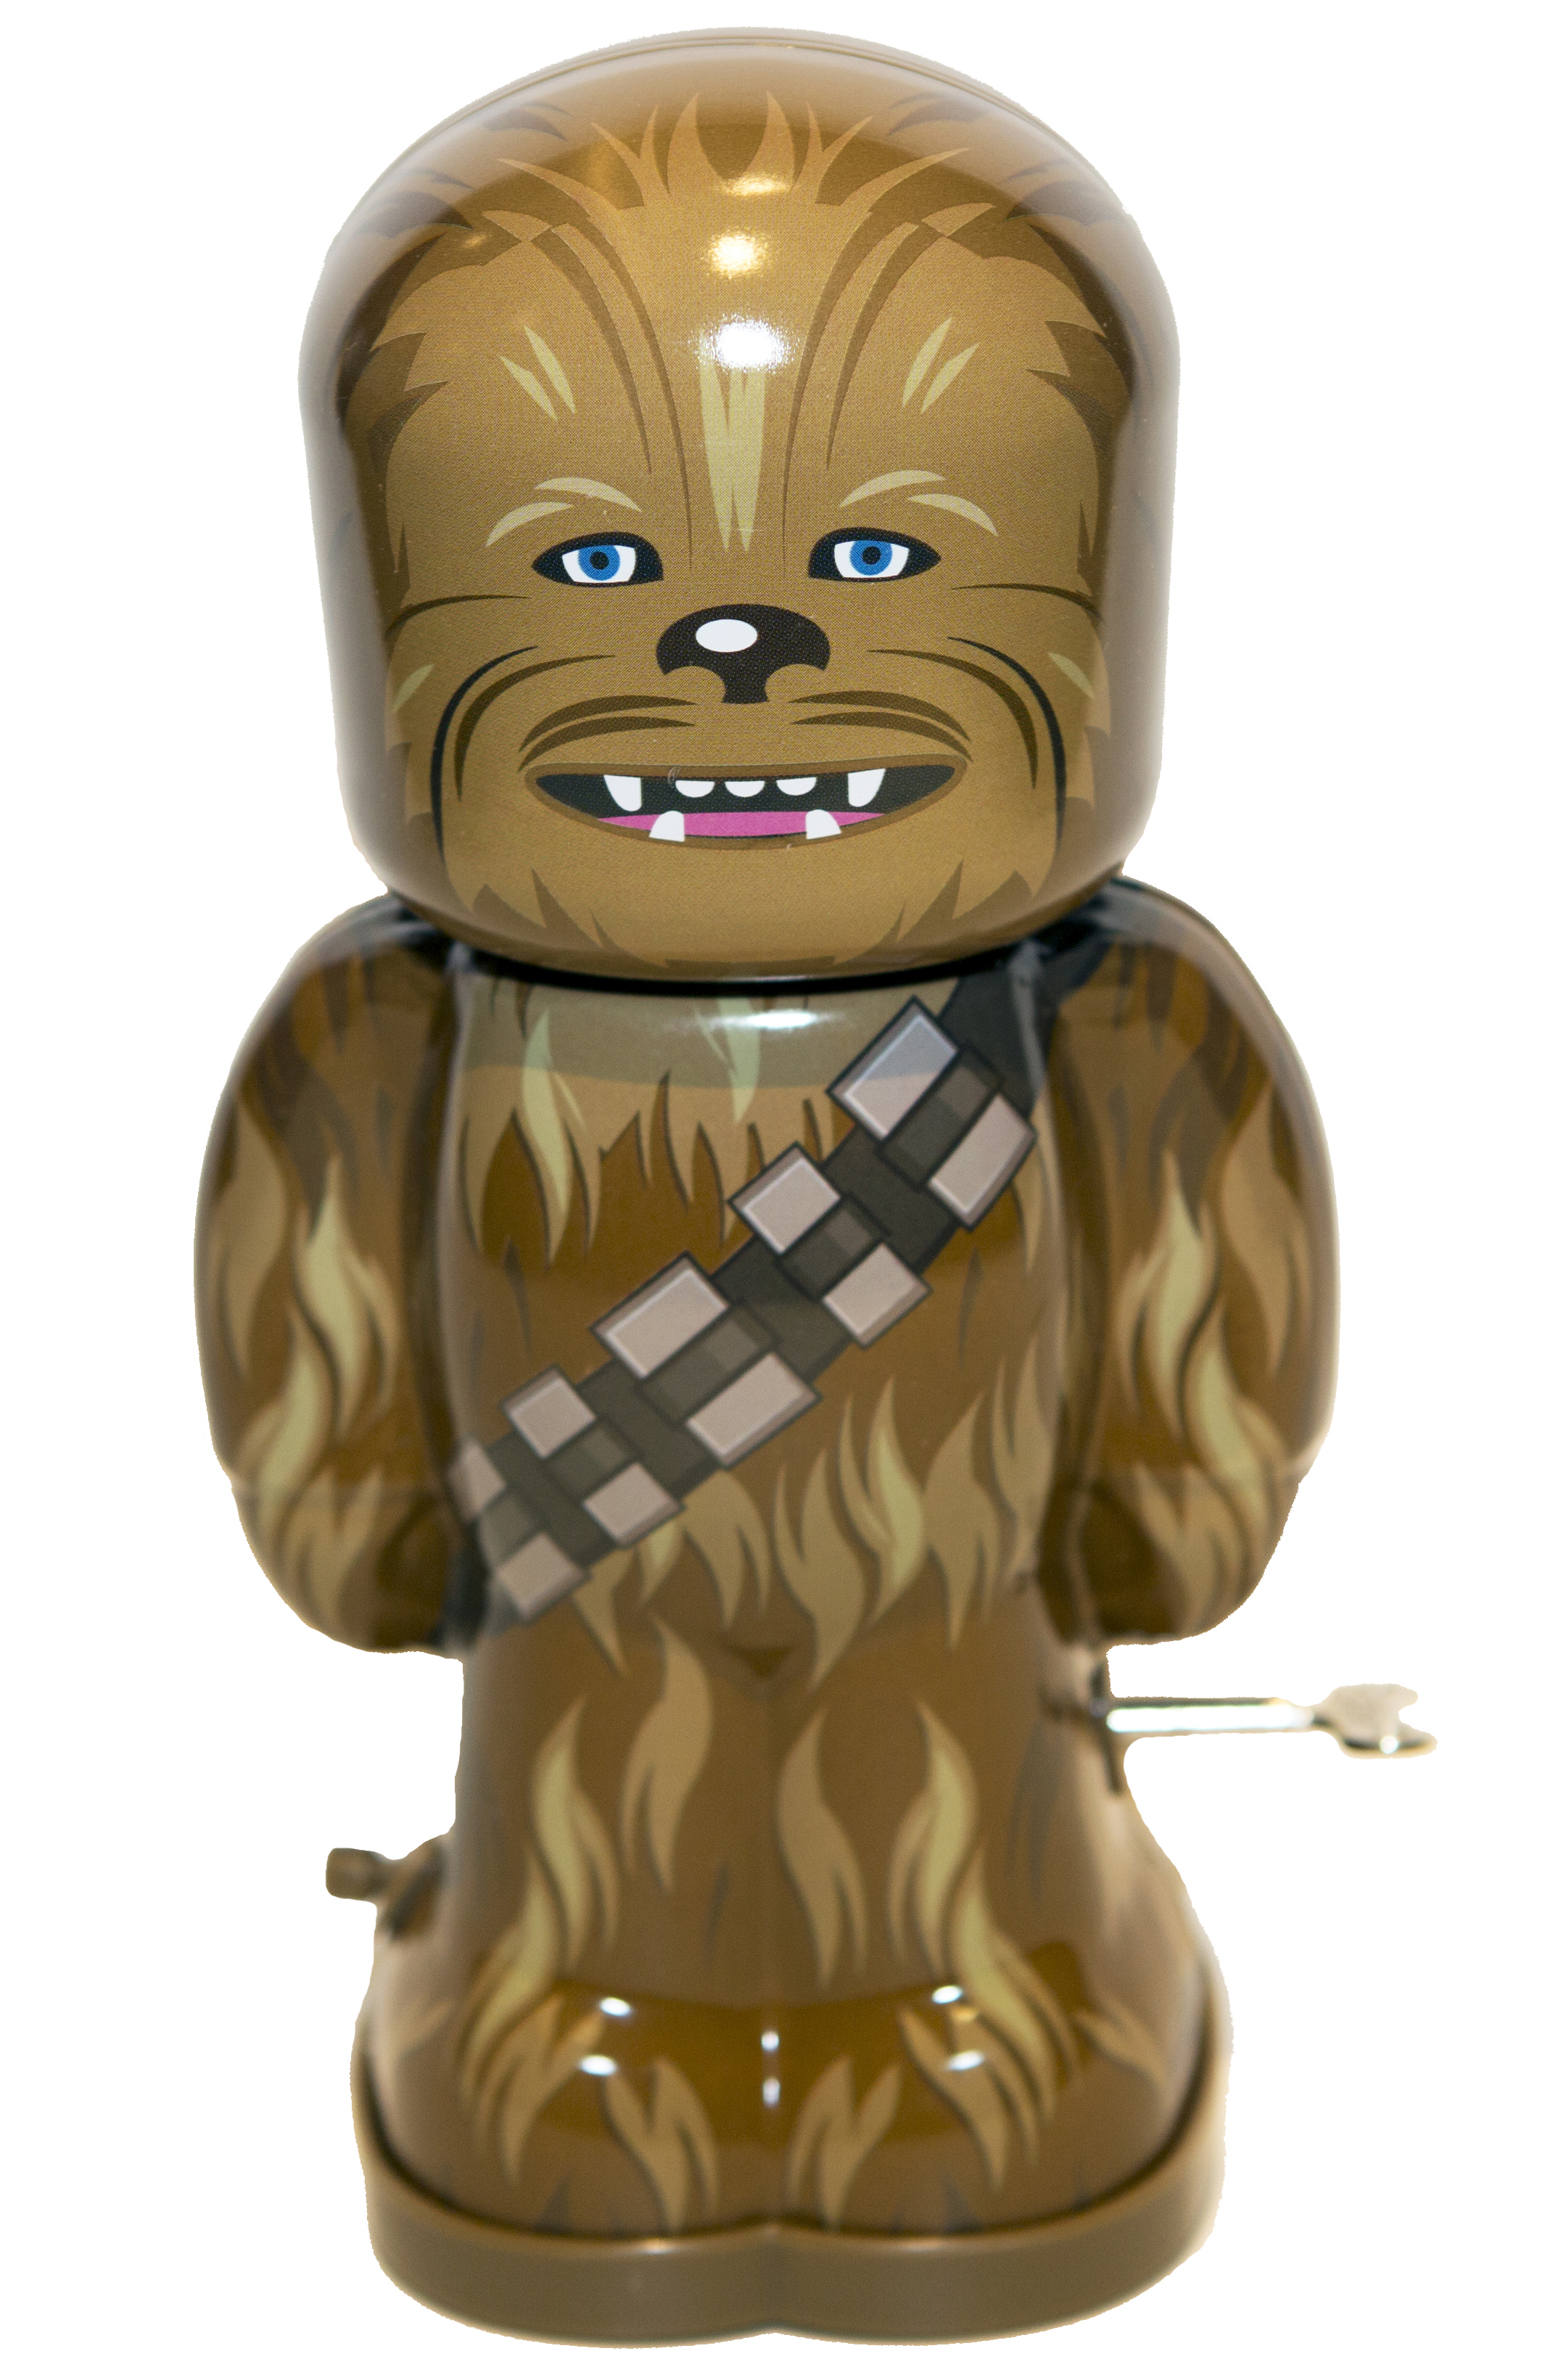 CHEWBACCA WIND-UP